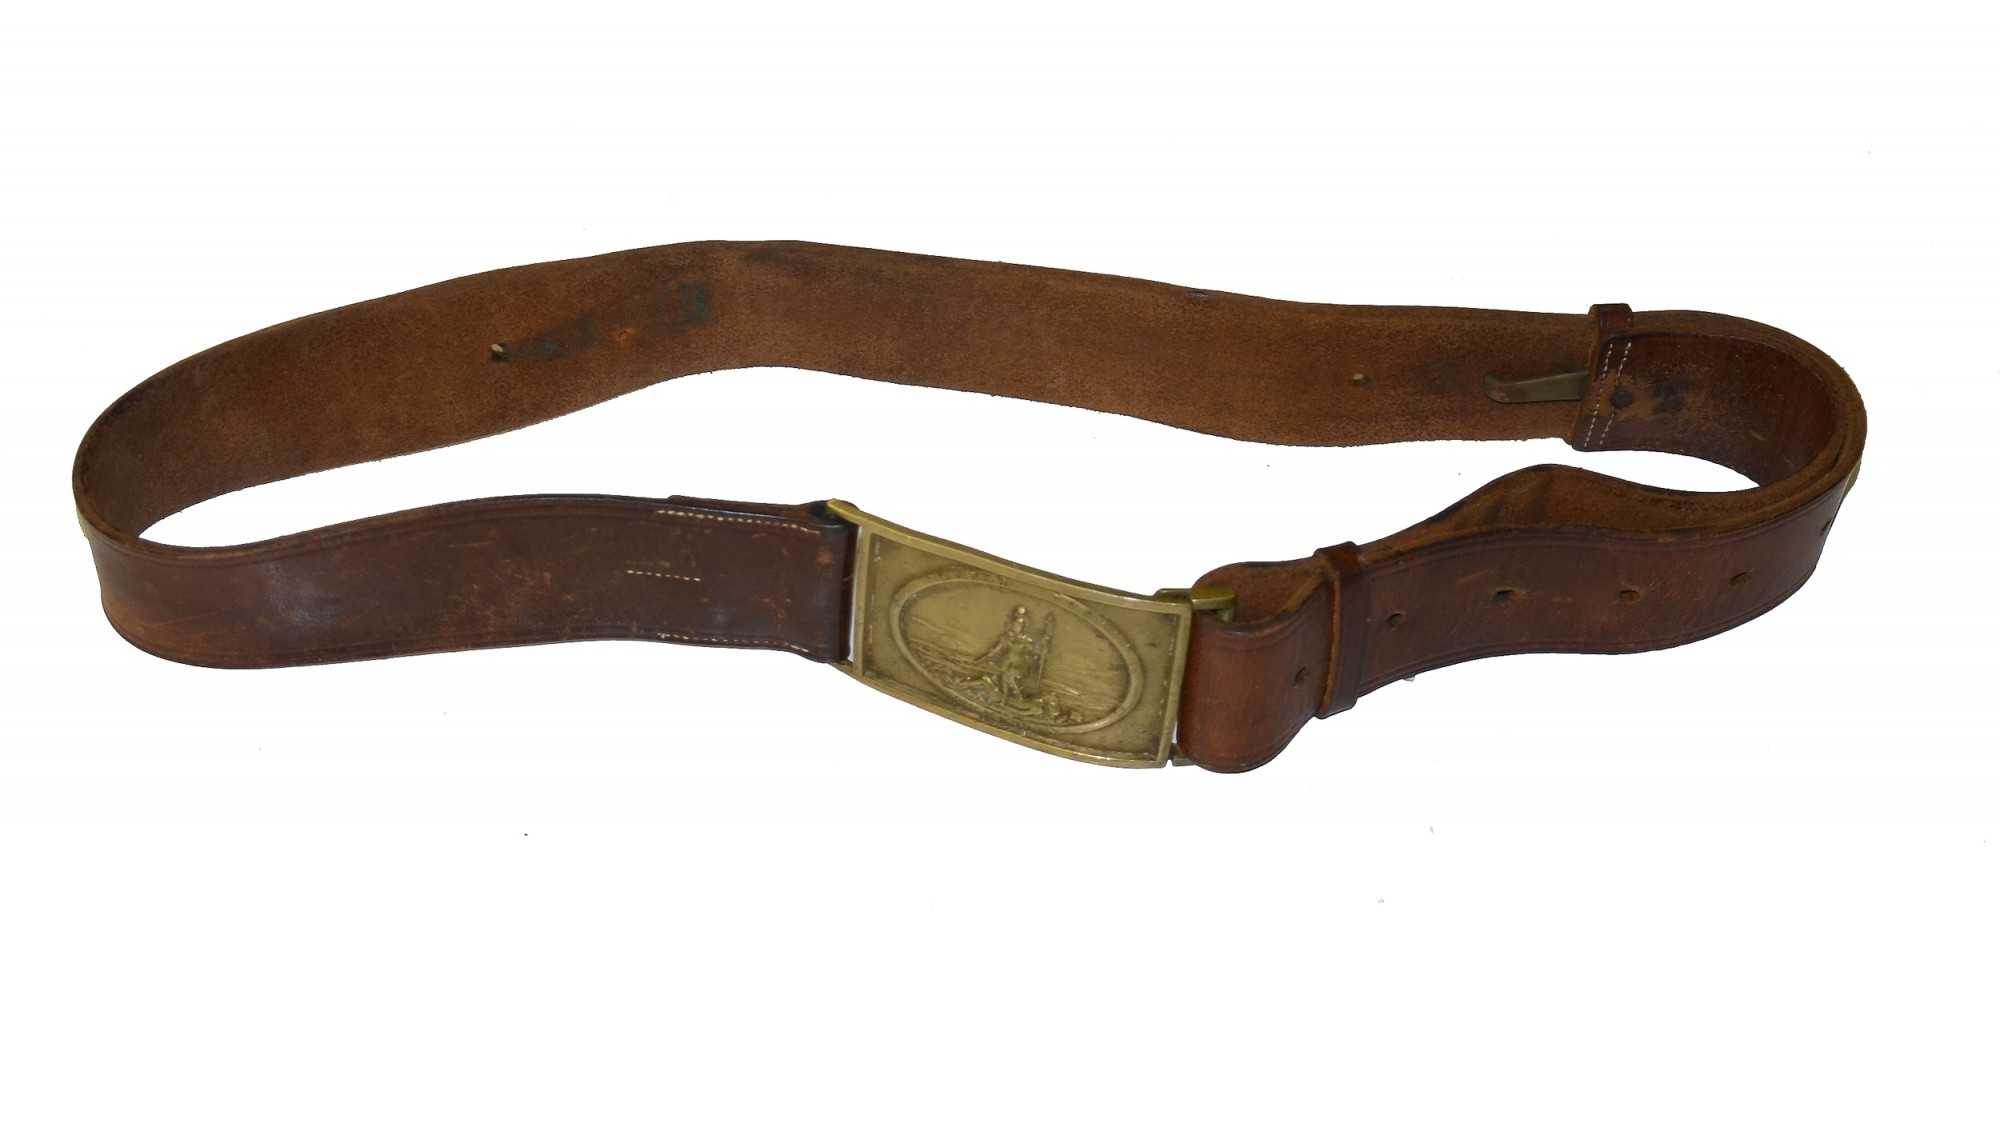 VIRGINIA RECTANGULAR SWORD BELT PLATE ON POST-WAR BROWN LEATHER BELT